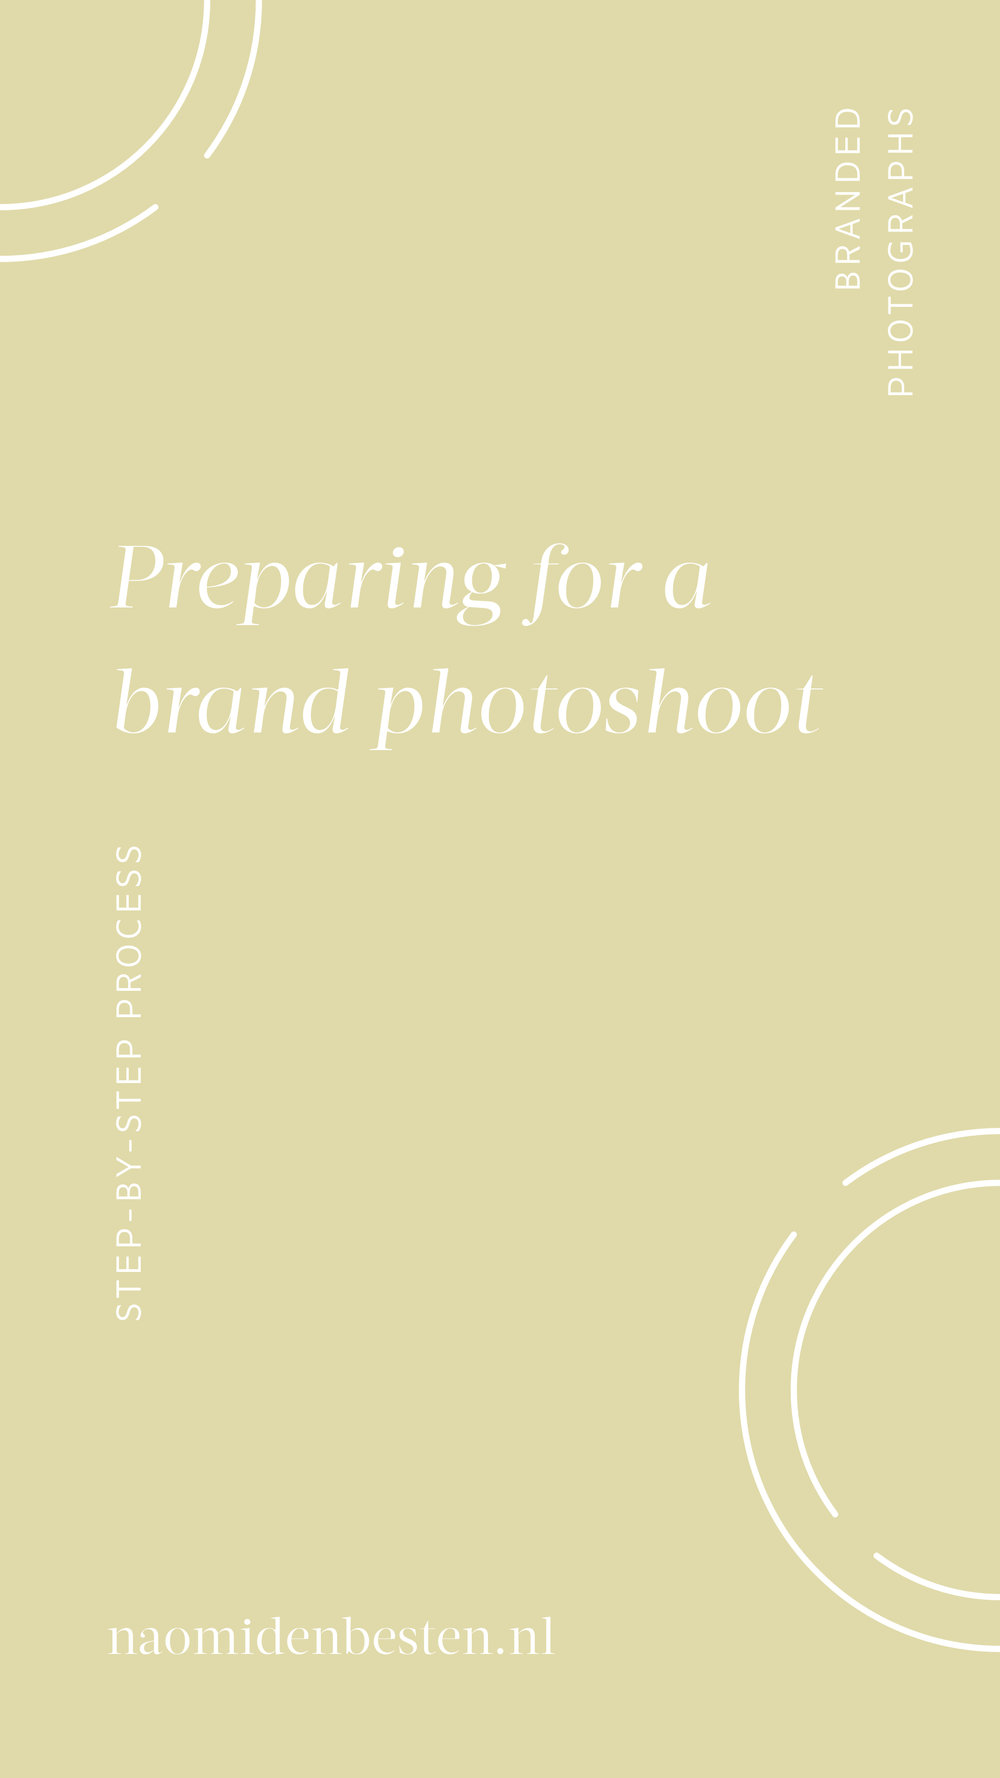 Preparing for a brand photoshoot